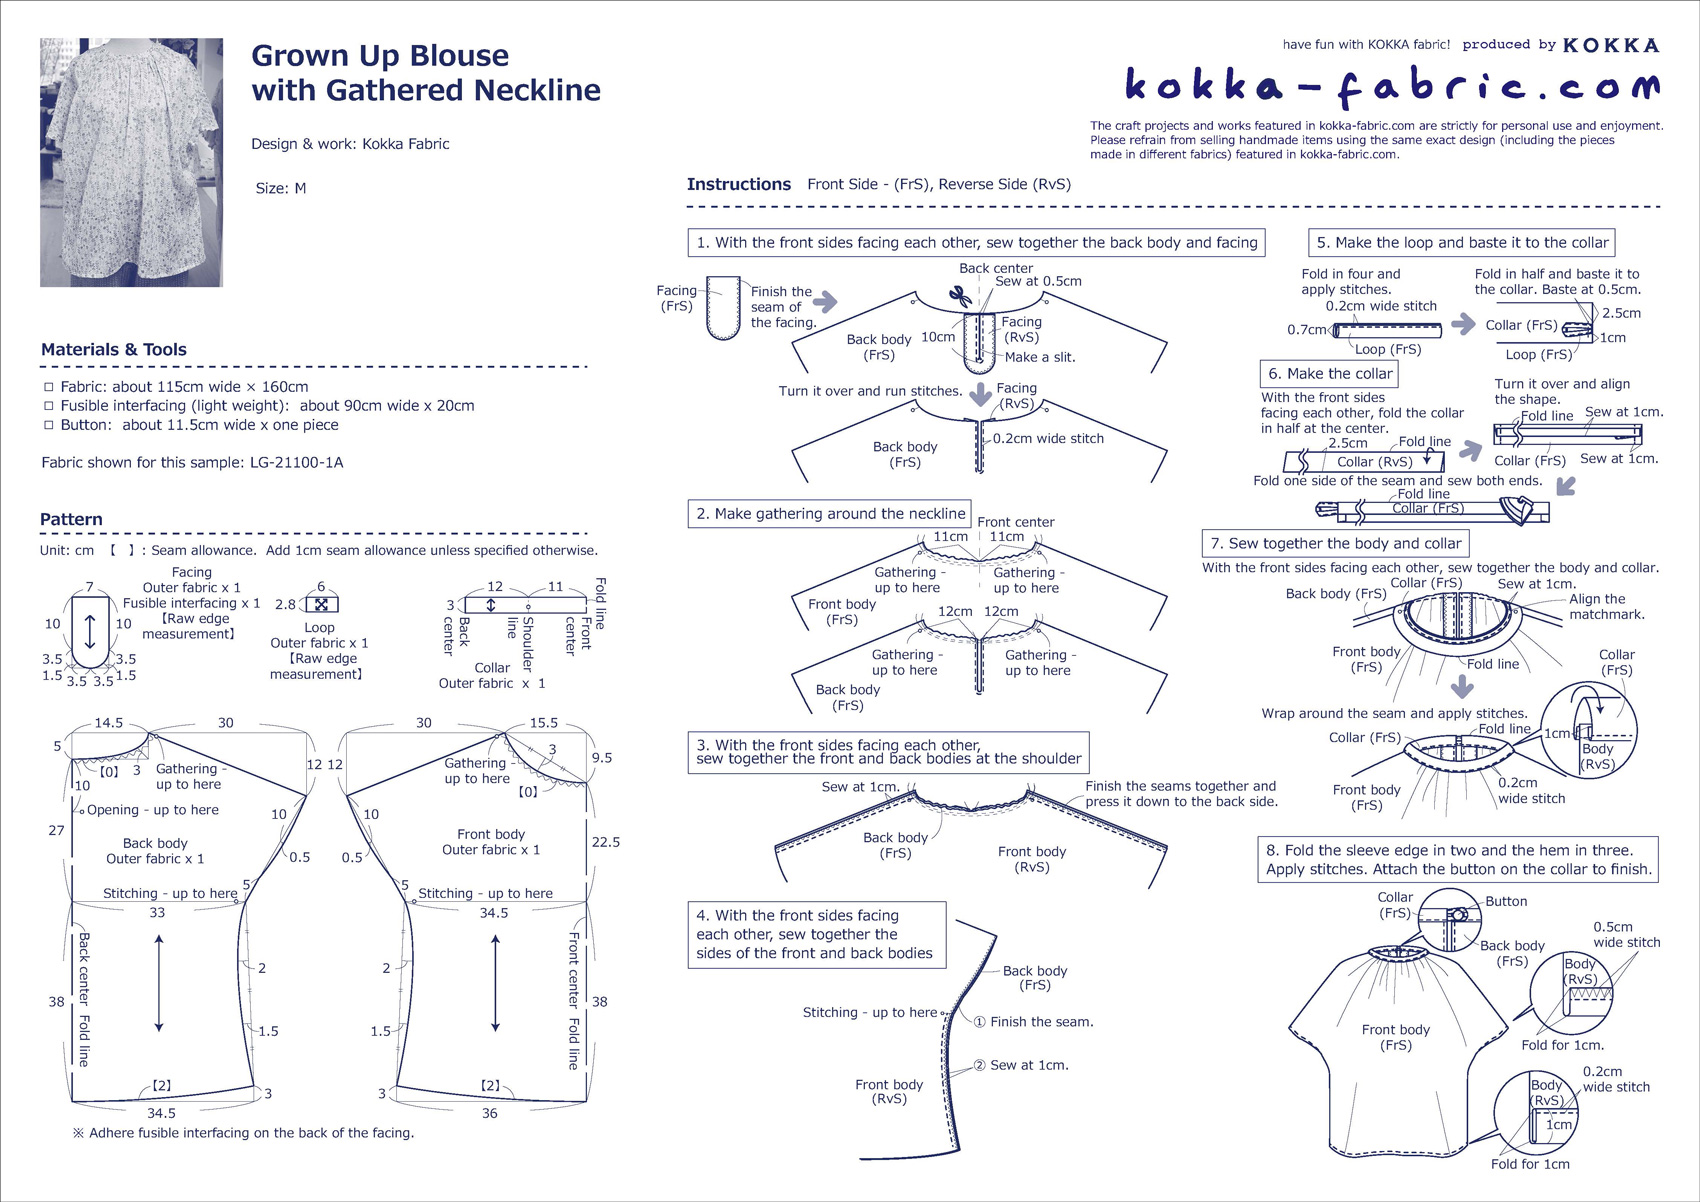 CS313_Grown-Up-Blouse-with-Gathered-Neckline_E